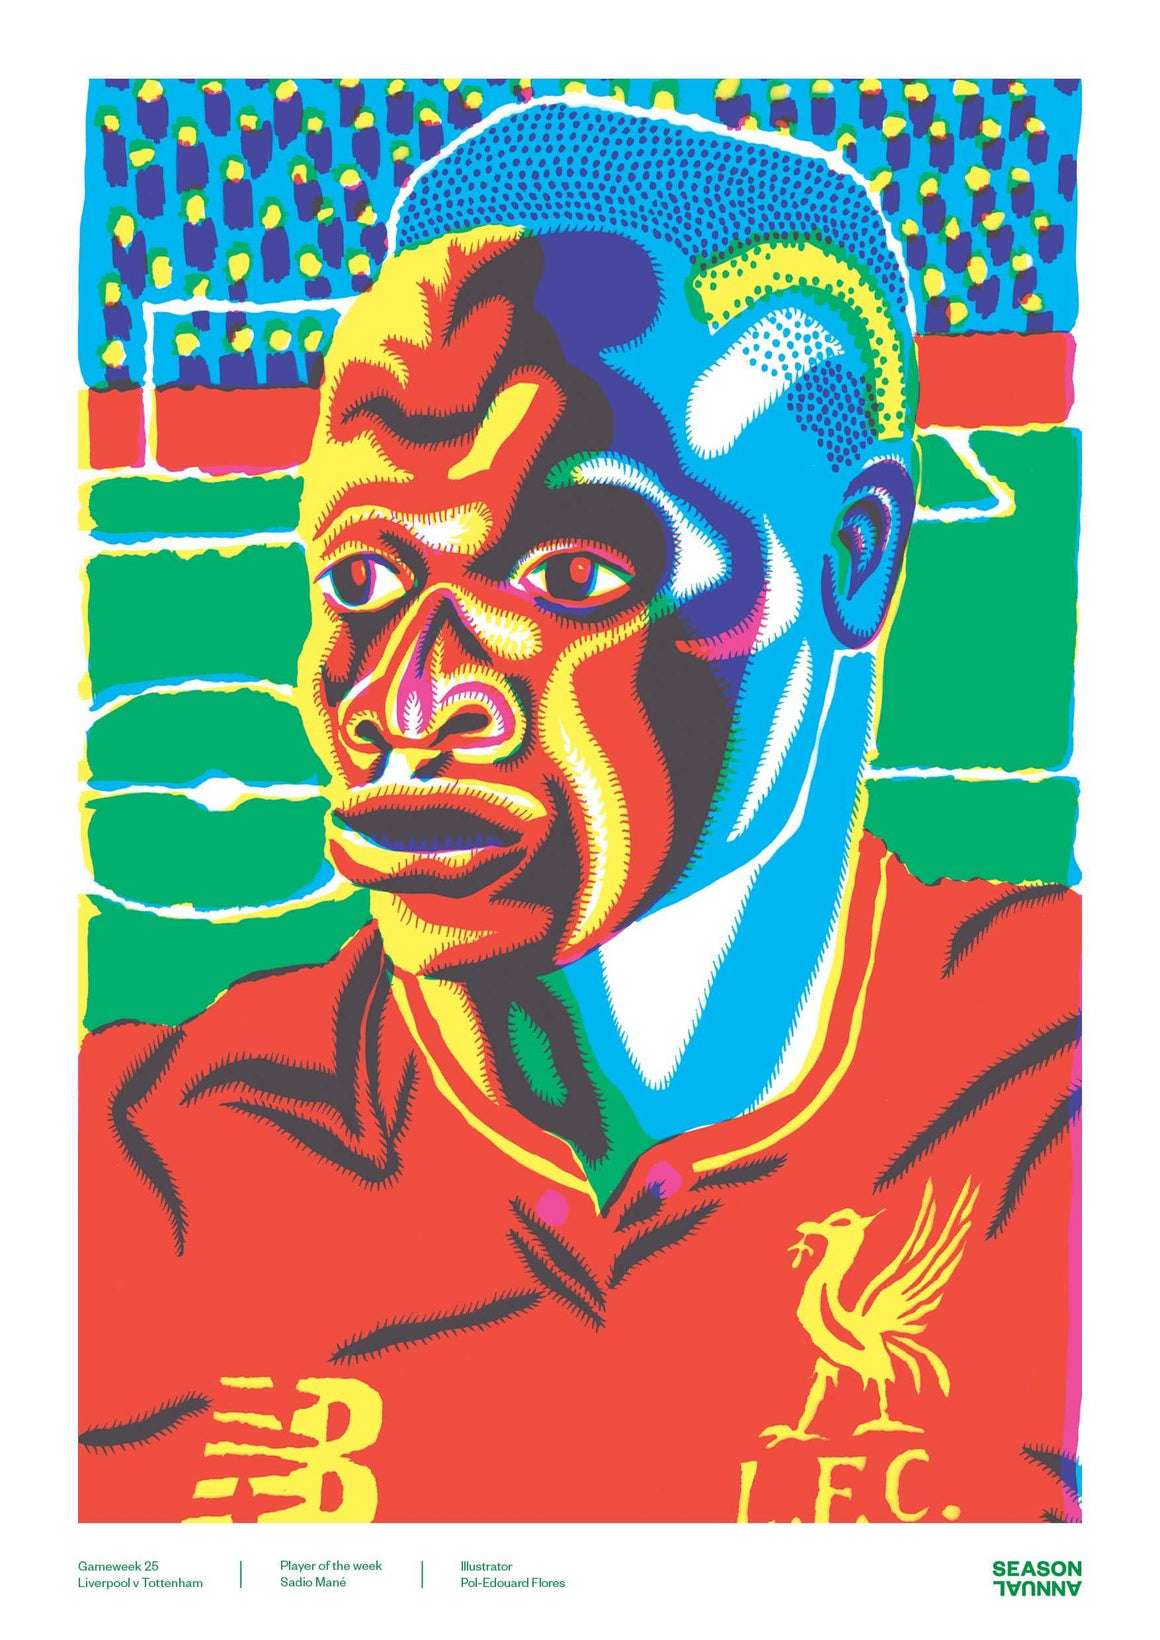 Season Annual A3 poster of Sadio Mané for Liverpool